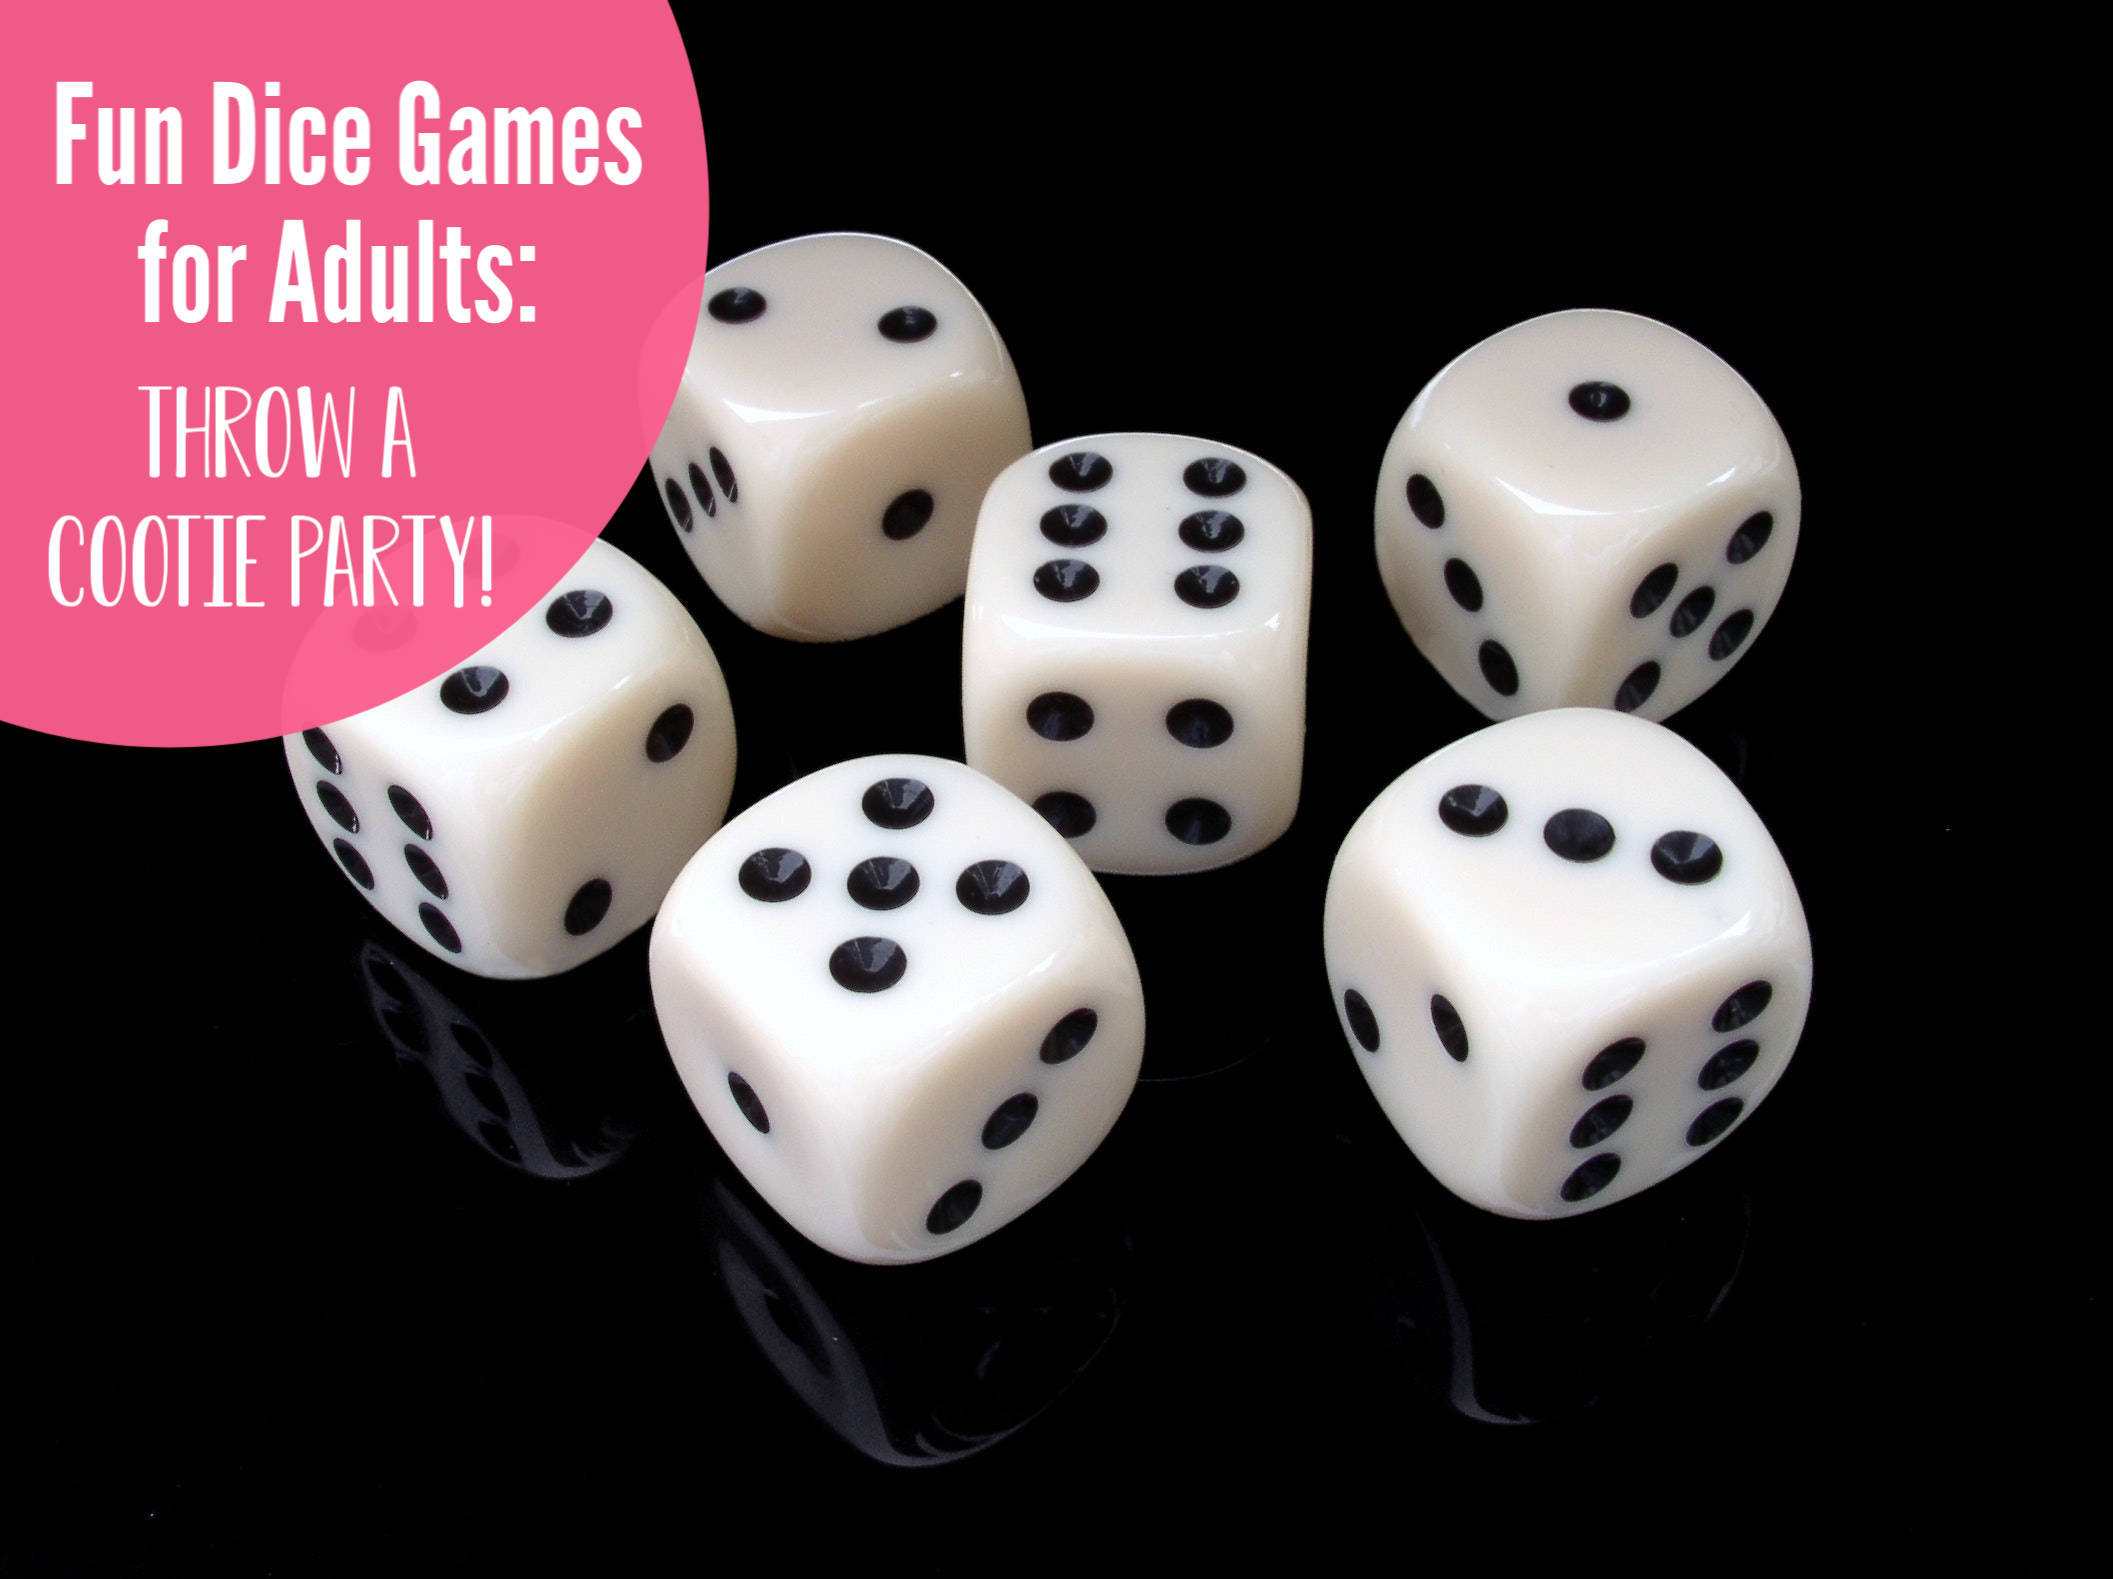 Fun Dice Games for Adults: Cootie Party